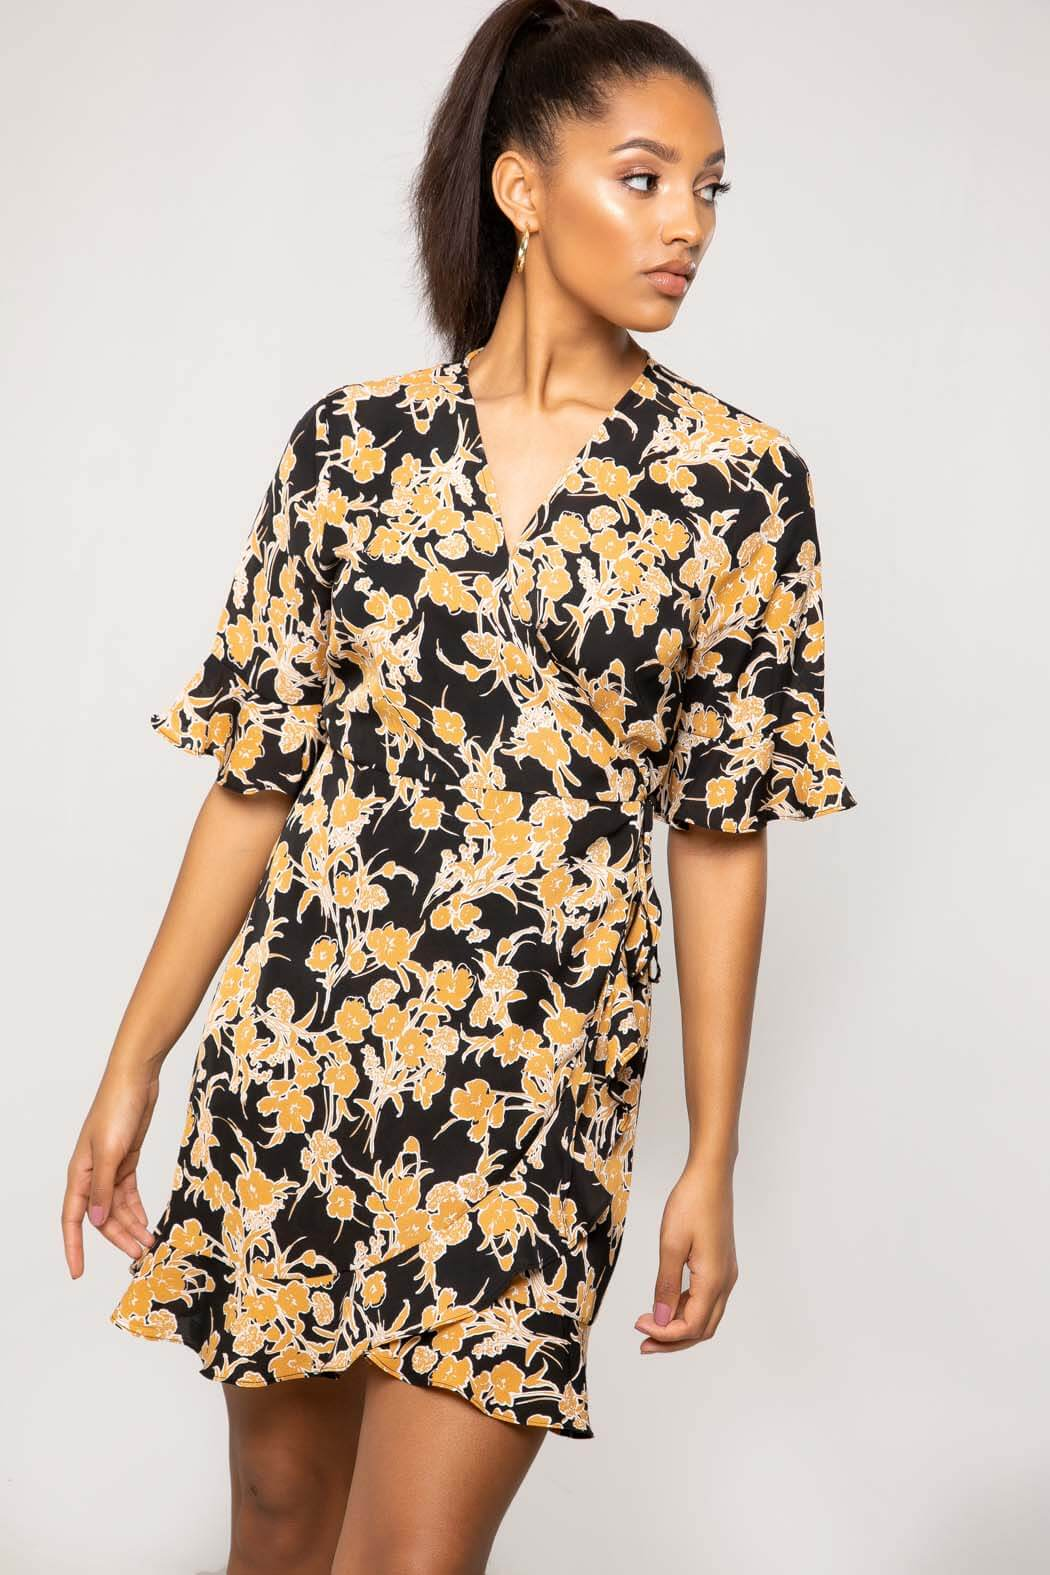 Siren Black Floral Mini Wrap Dress